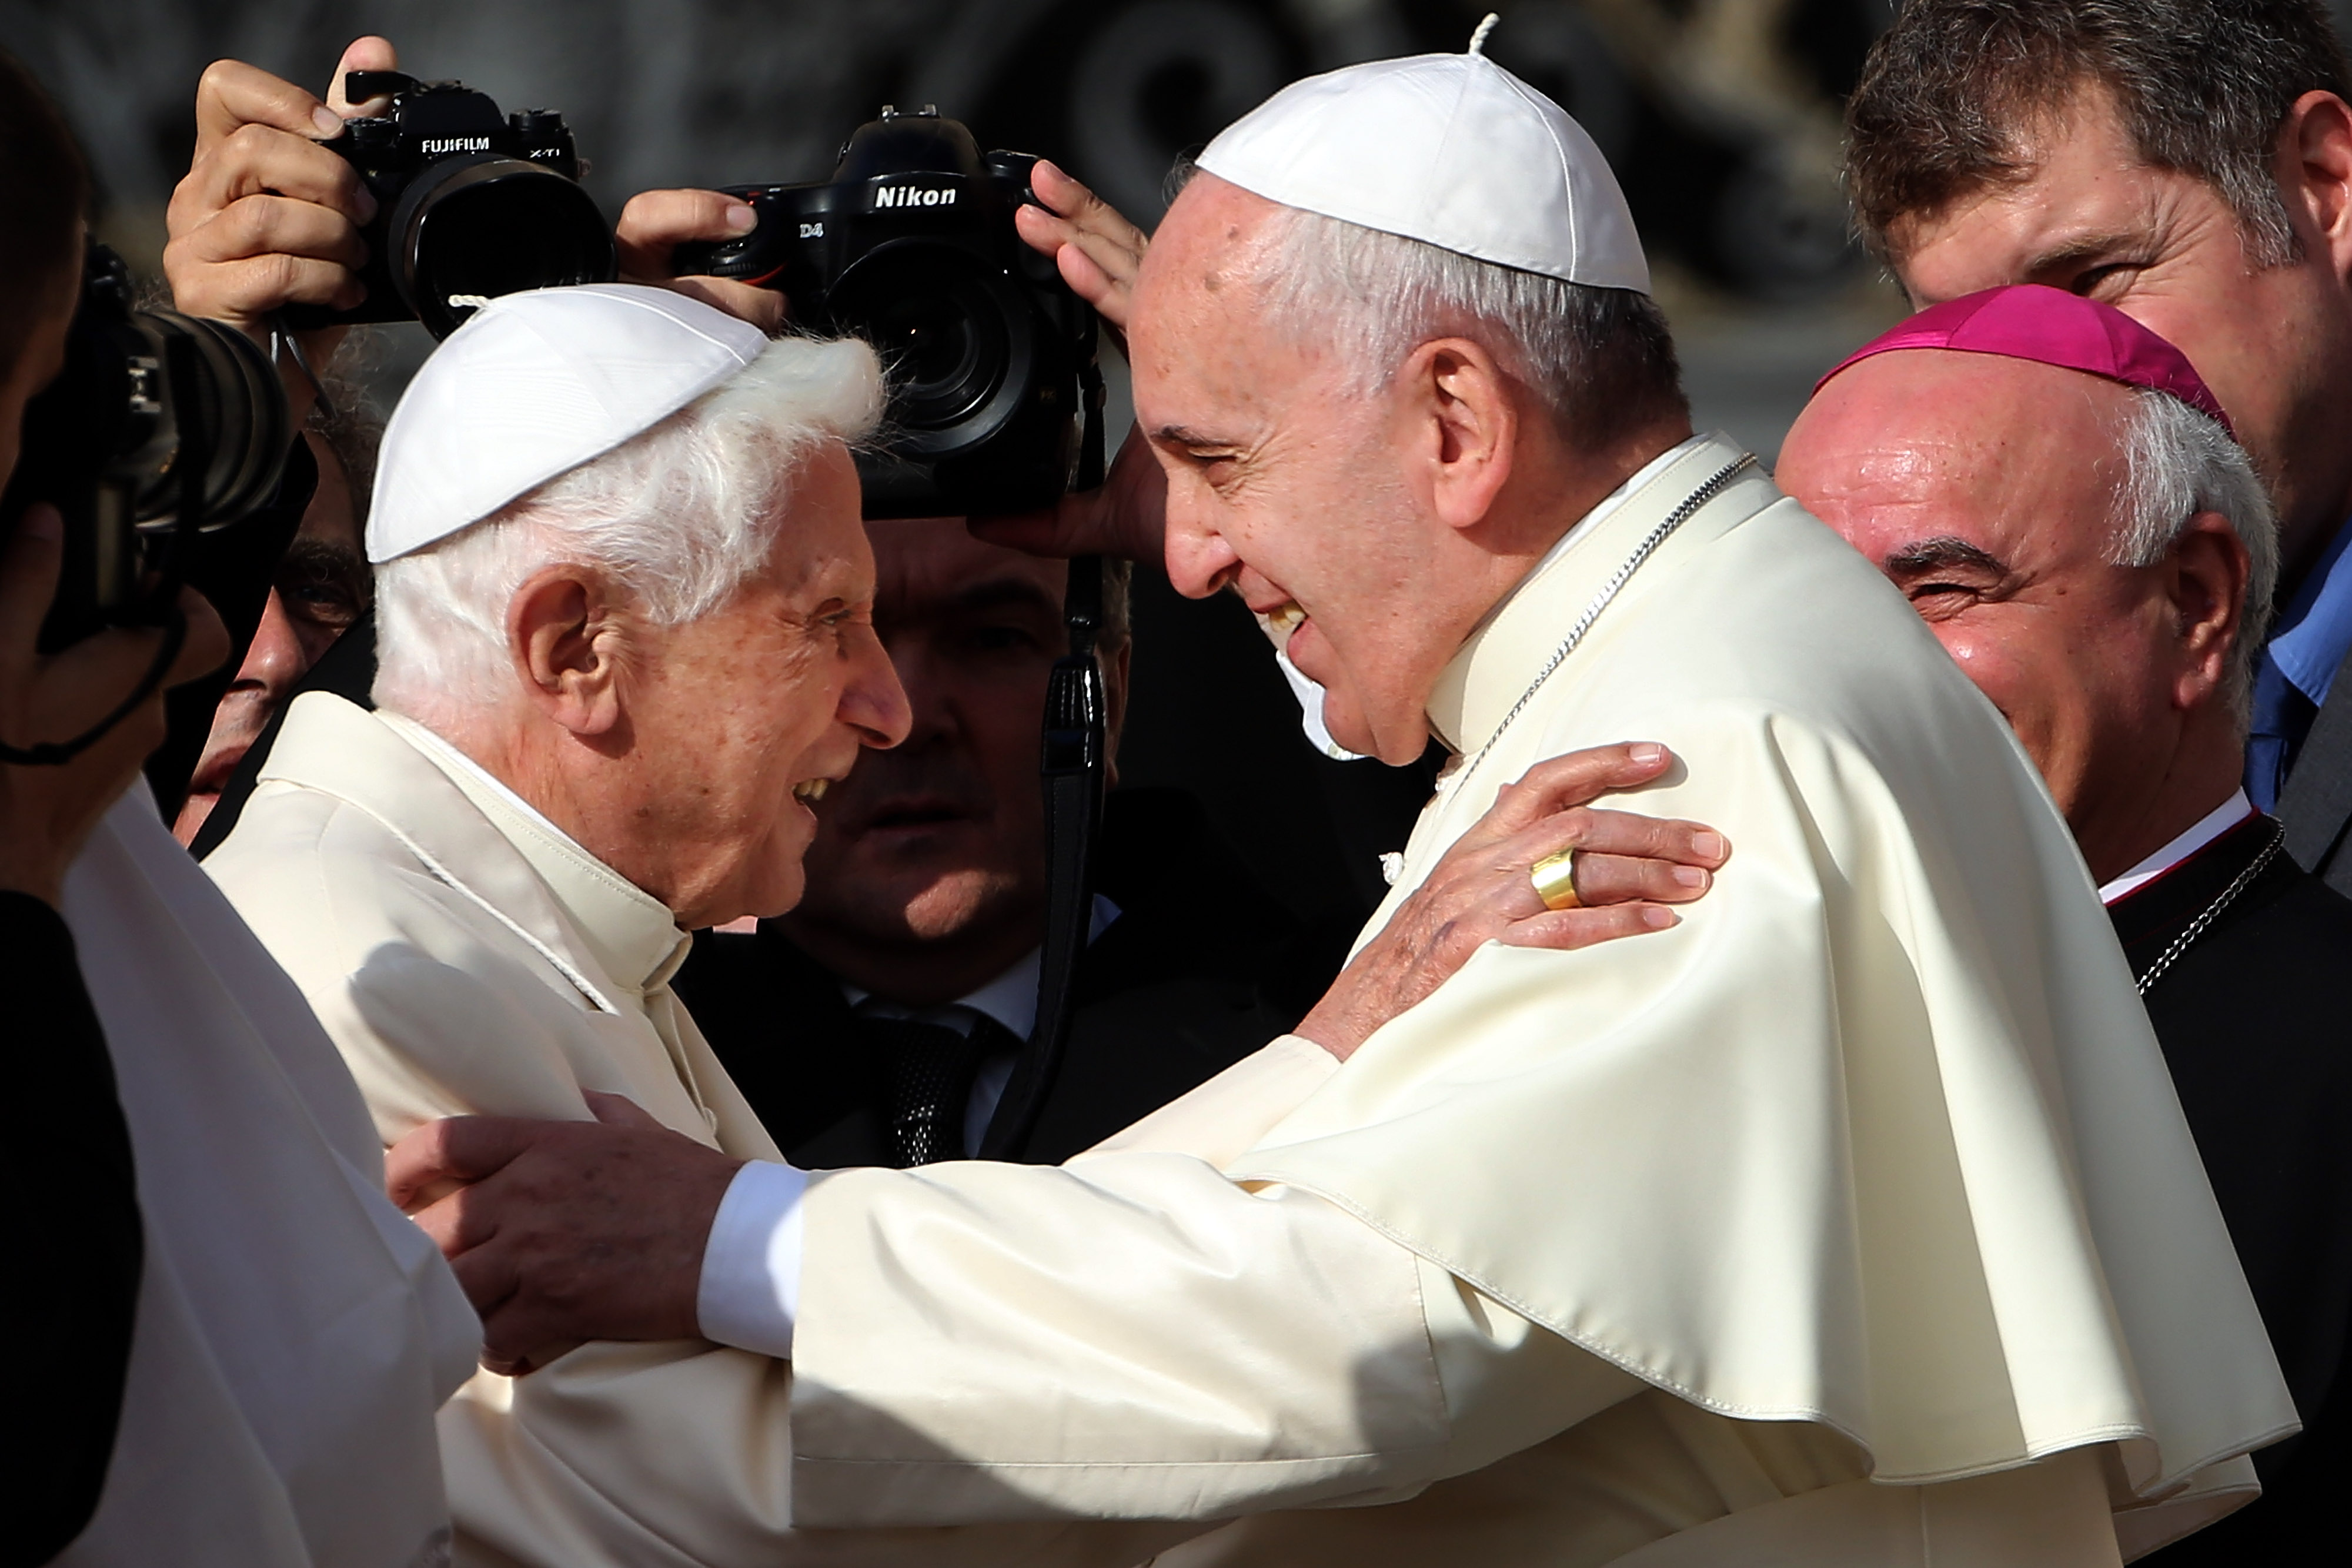 VATICAN CITY, VATICAN - SEPTEMBER 28: Pope Francis (R) greets Pope Emeritus Benedict XVI as he arrives at St. Peter's Basilica during a celebration for grandparents and the elderly on September 28, 2014 in Vatican City, Vatican. Pope Francis celebrated Mass on Sunday morning in St Peter's Square, following a special encounter with elderly persons. In his homily, the Holy Father said 'Elderly are key to health of free society'. (Photo by Franco Origlia/Getty Images)